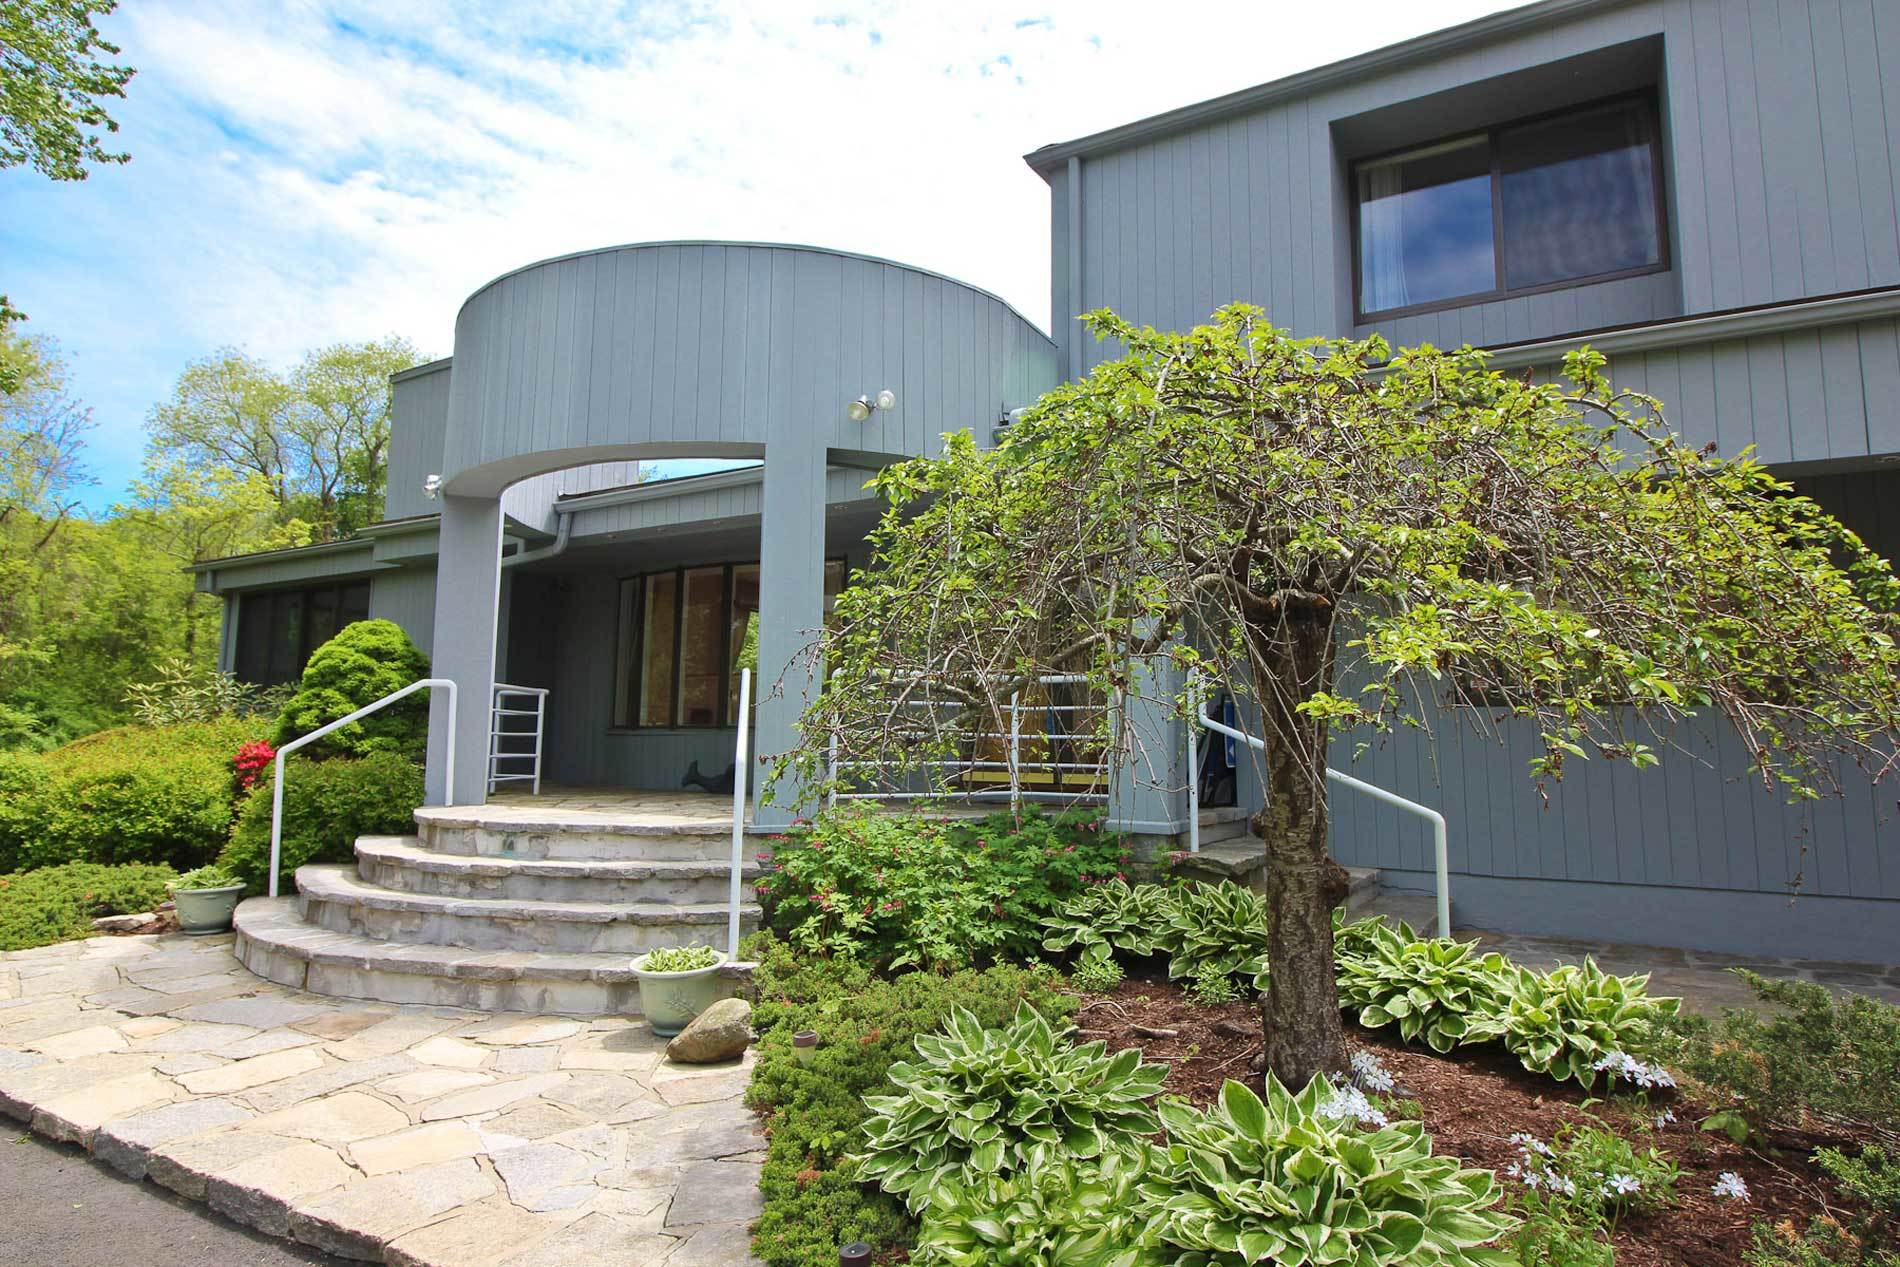 Contemporary homes for sale in wilton ct find and buy modern houses dagnys real estate